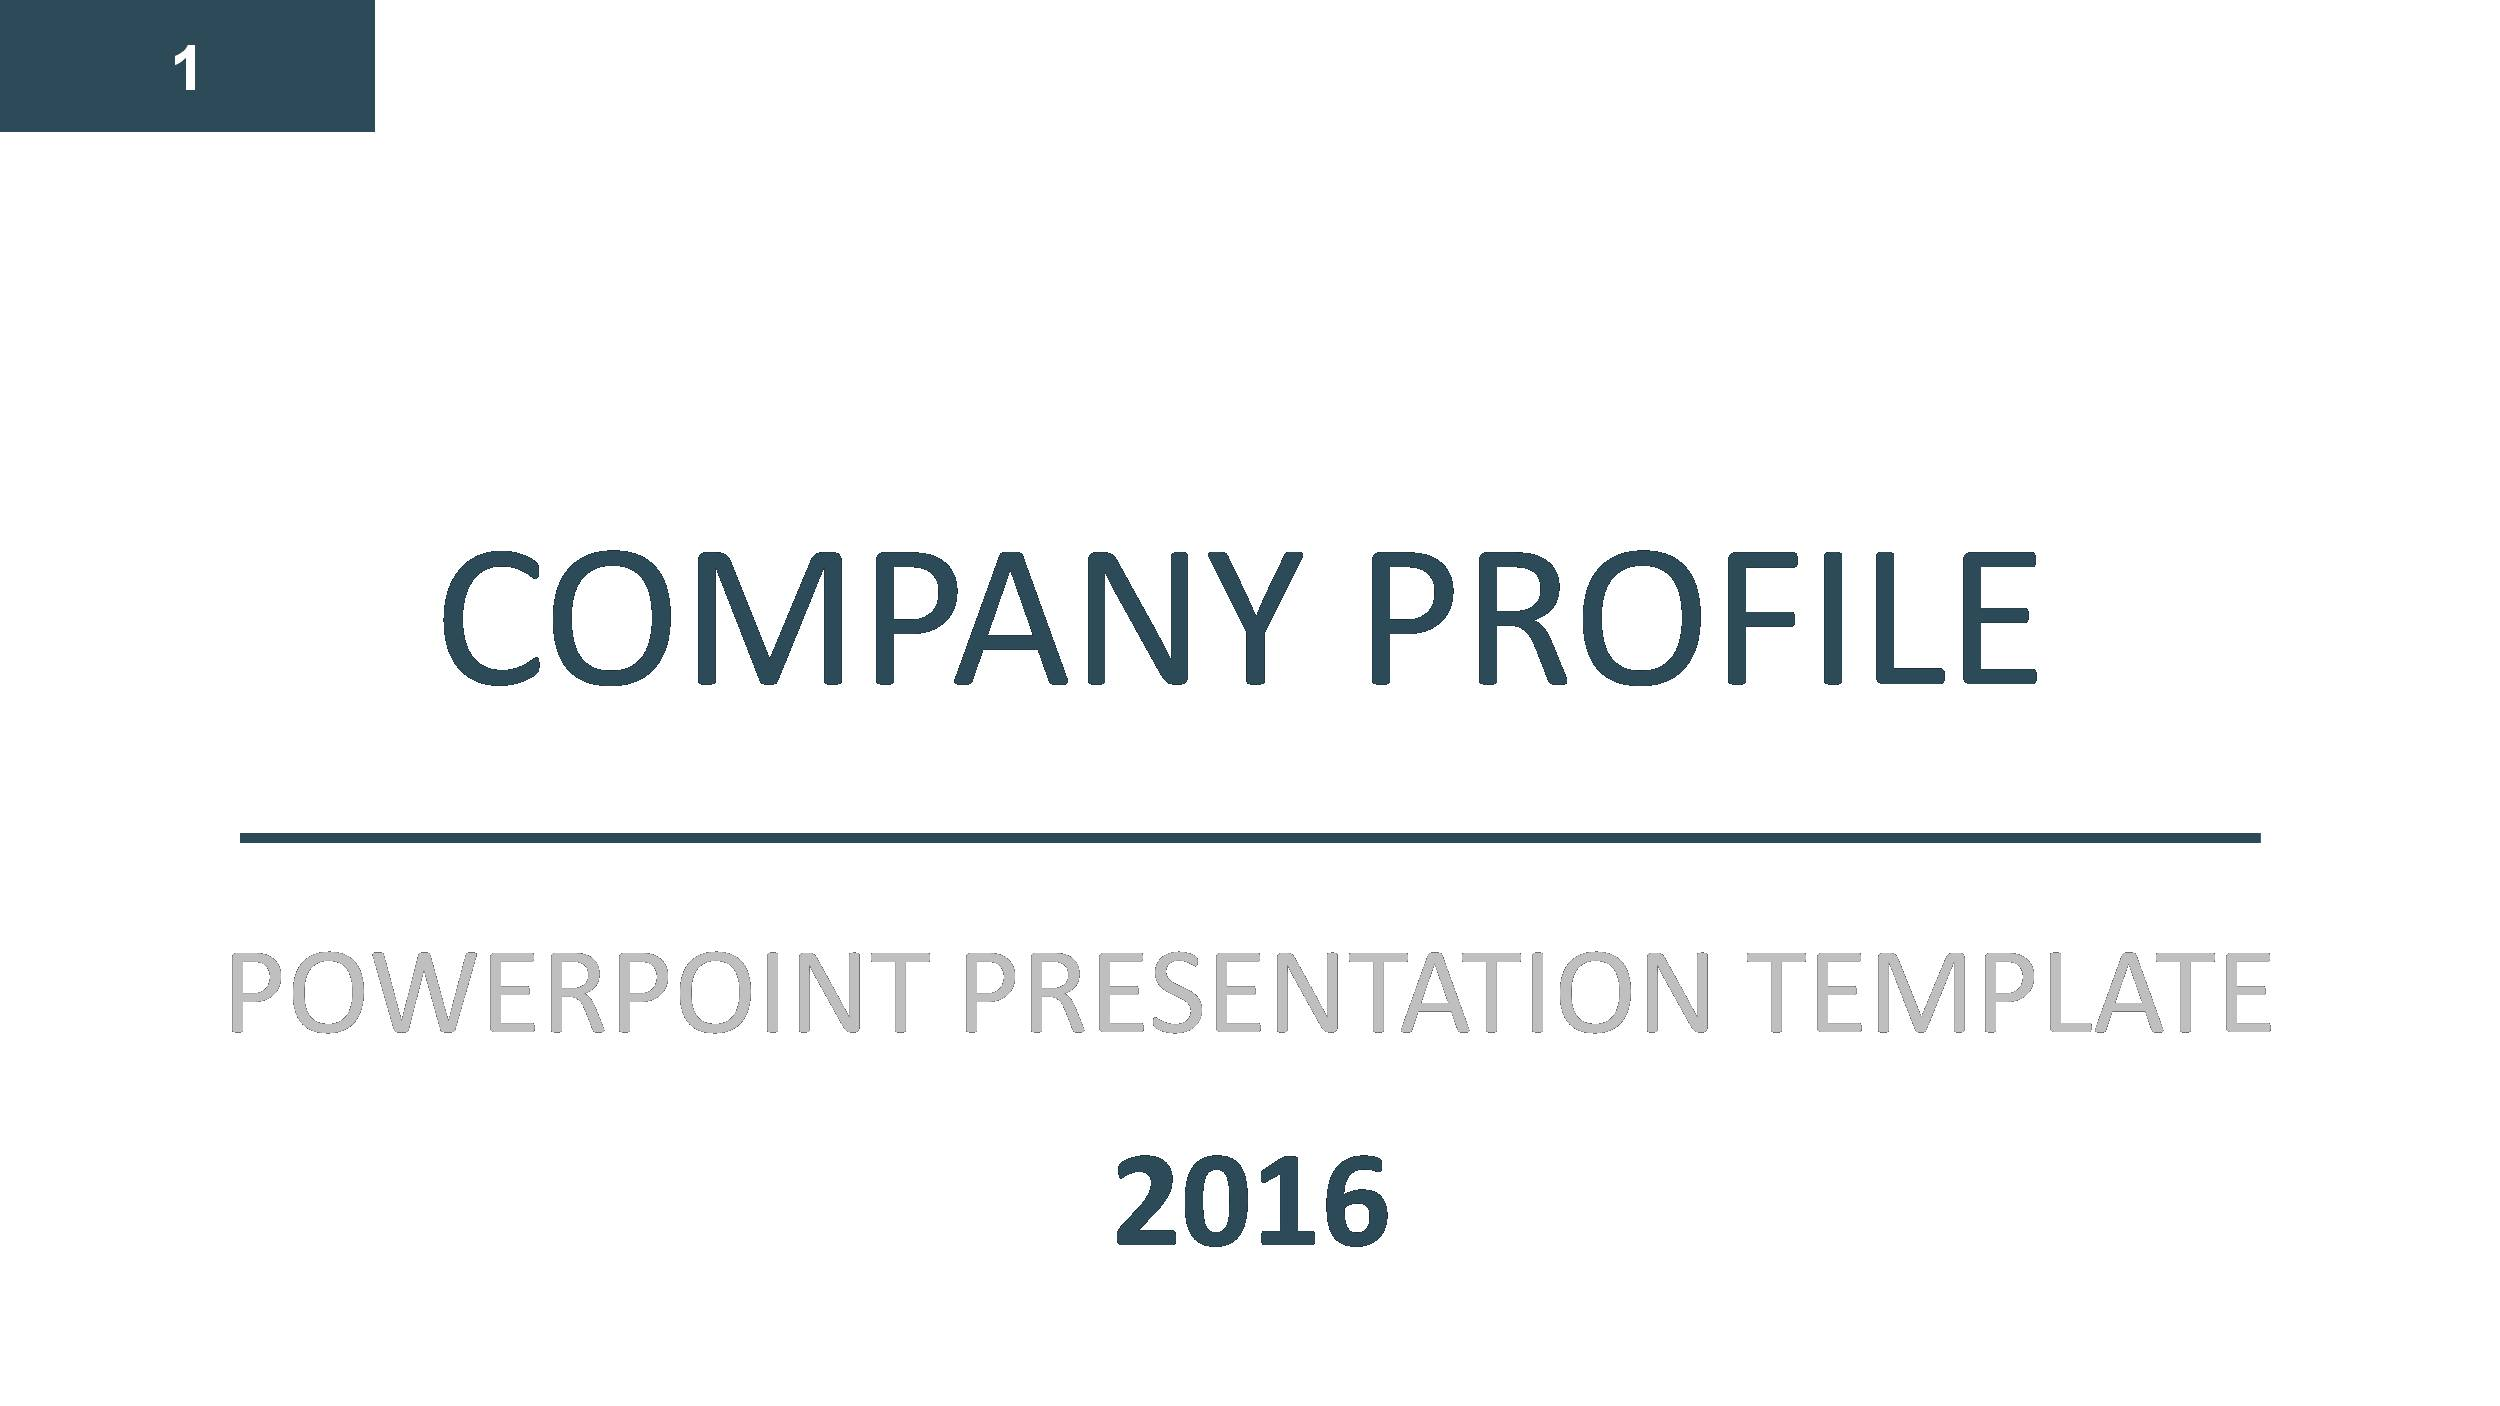 Company Profile PowerPoint Presentation Template By